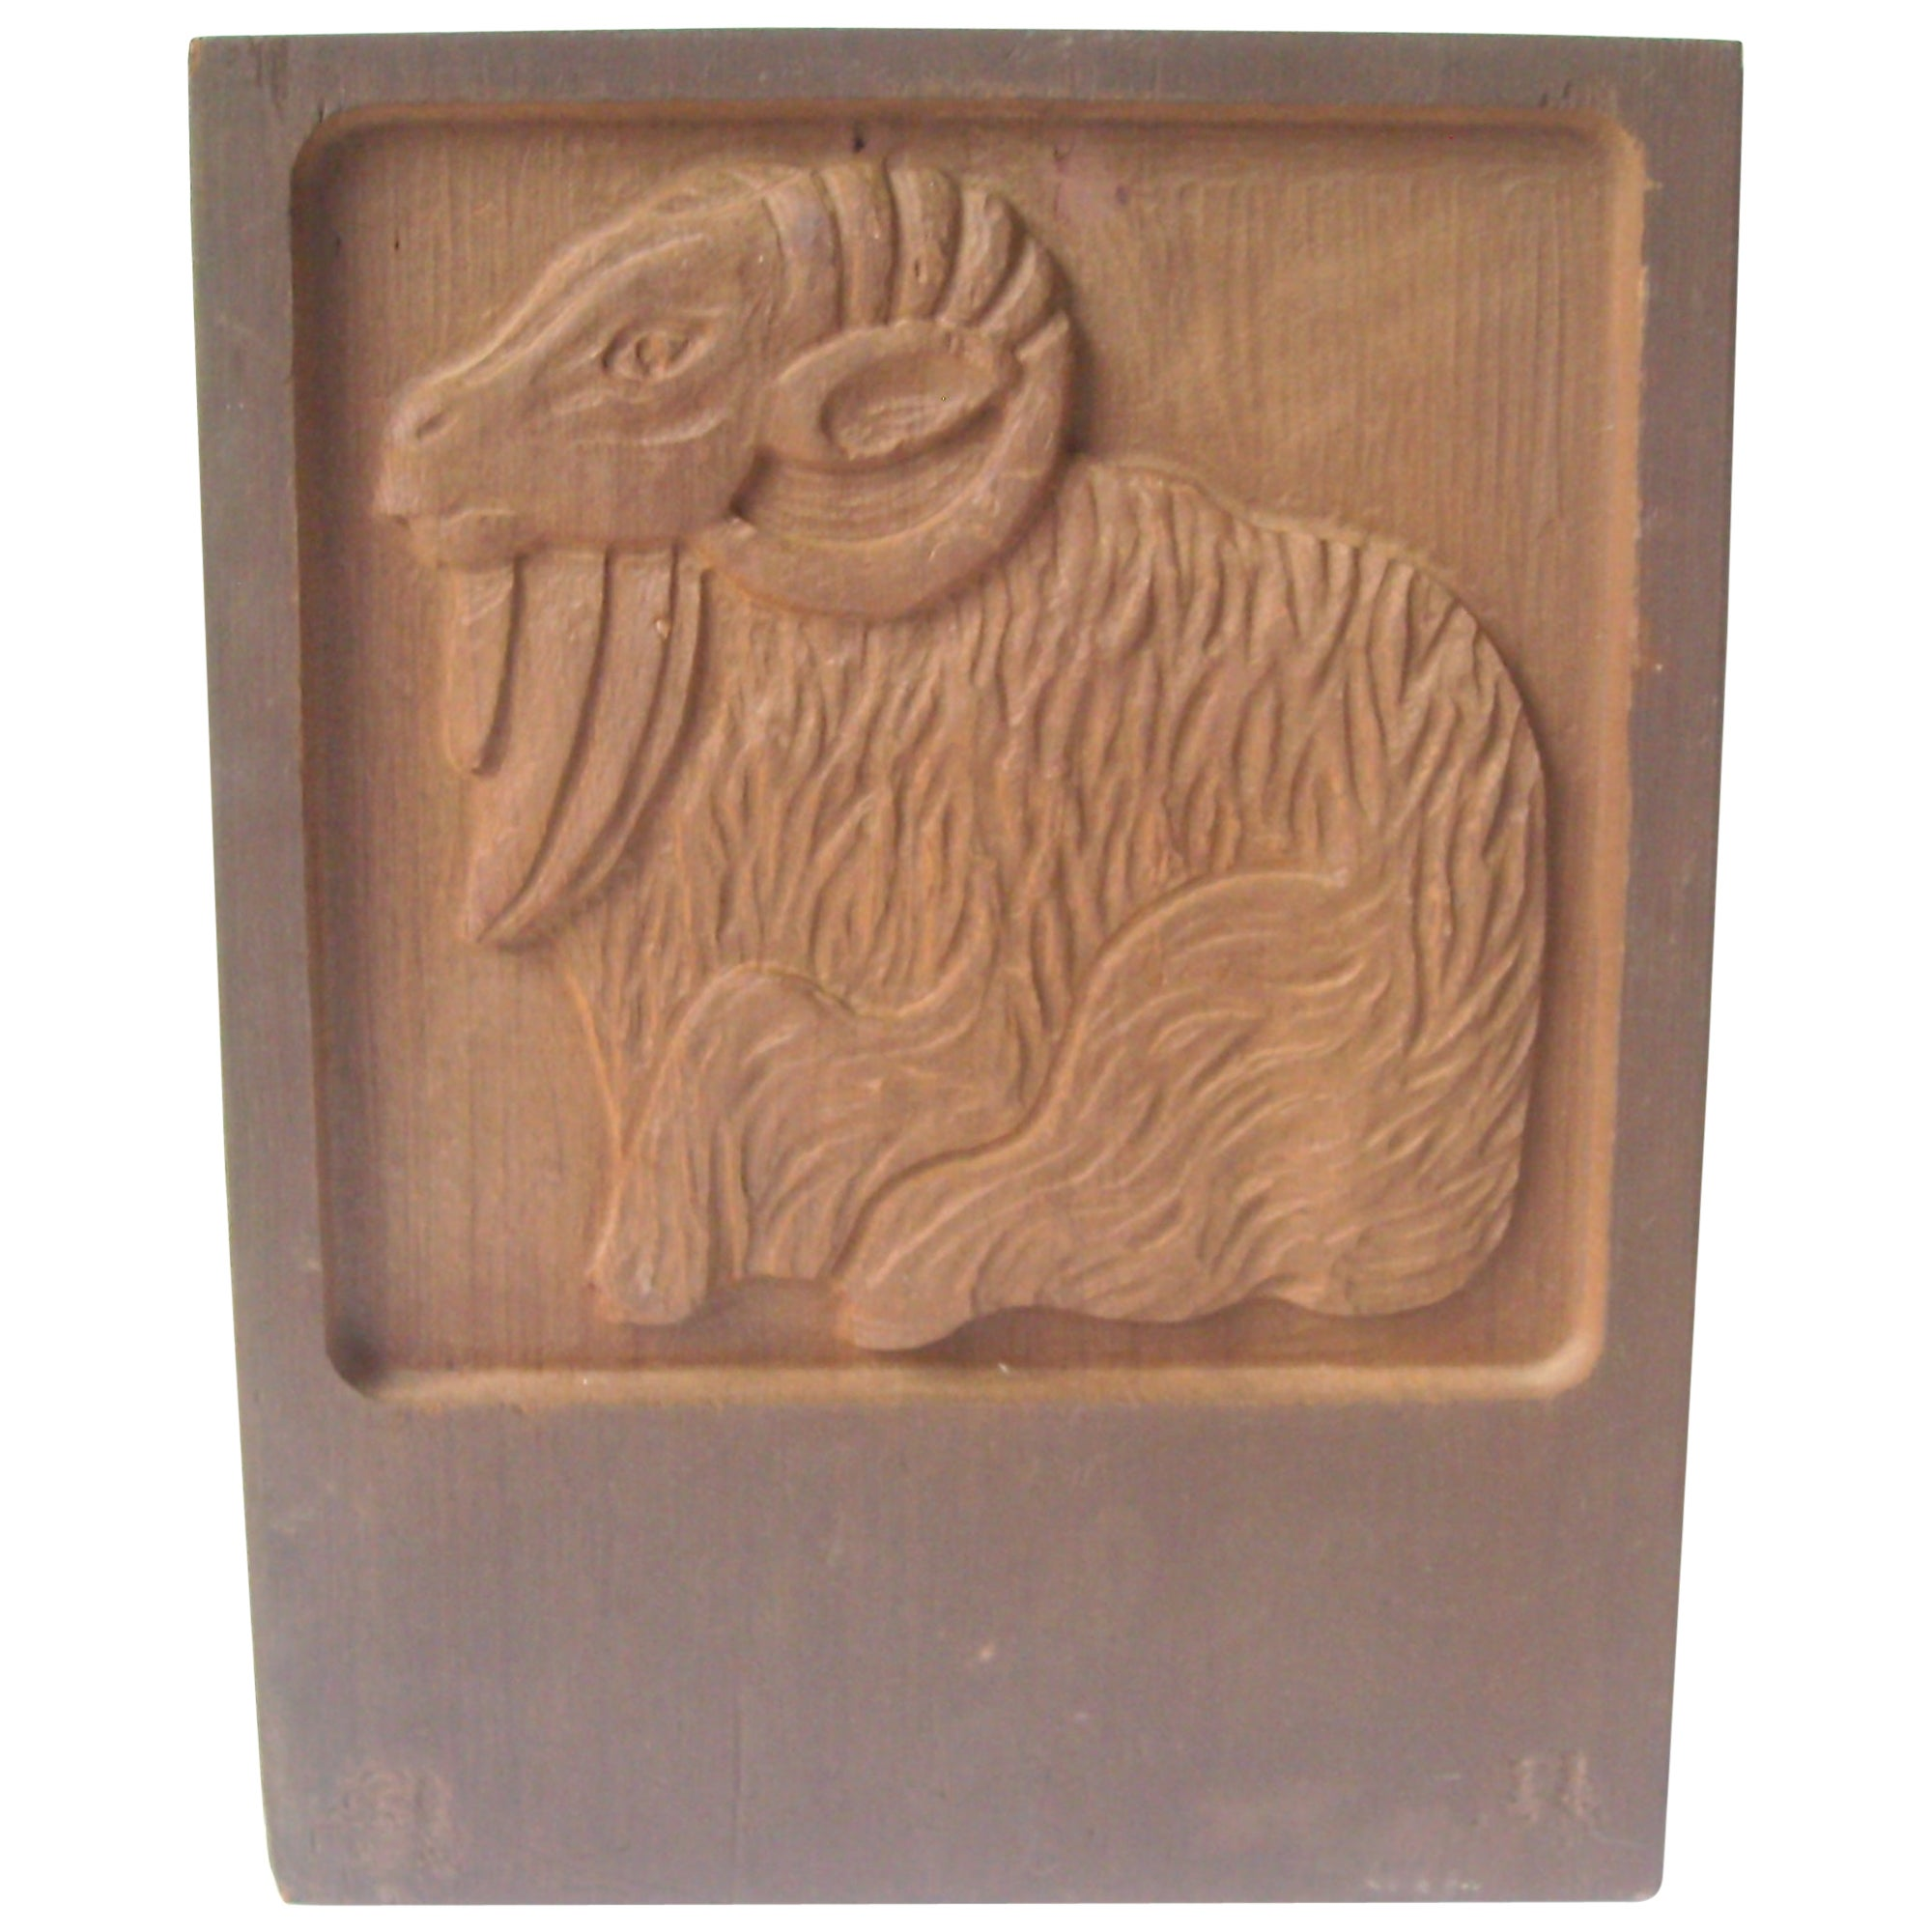 Jerry and Evelyn Ackerman Wood Carving Sculpture/Panel, by Era Industries Marked